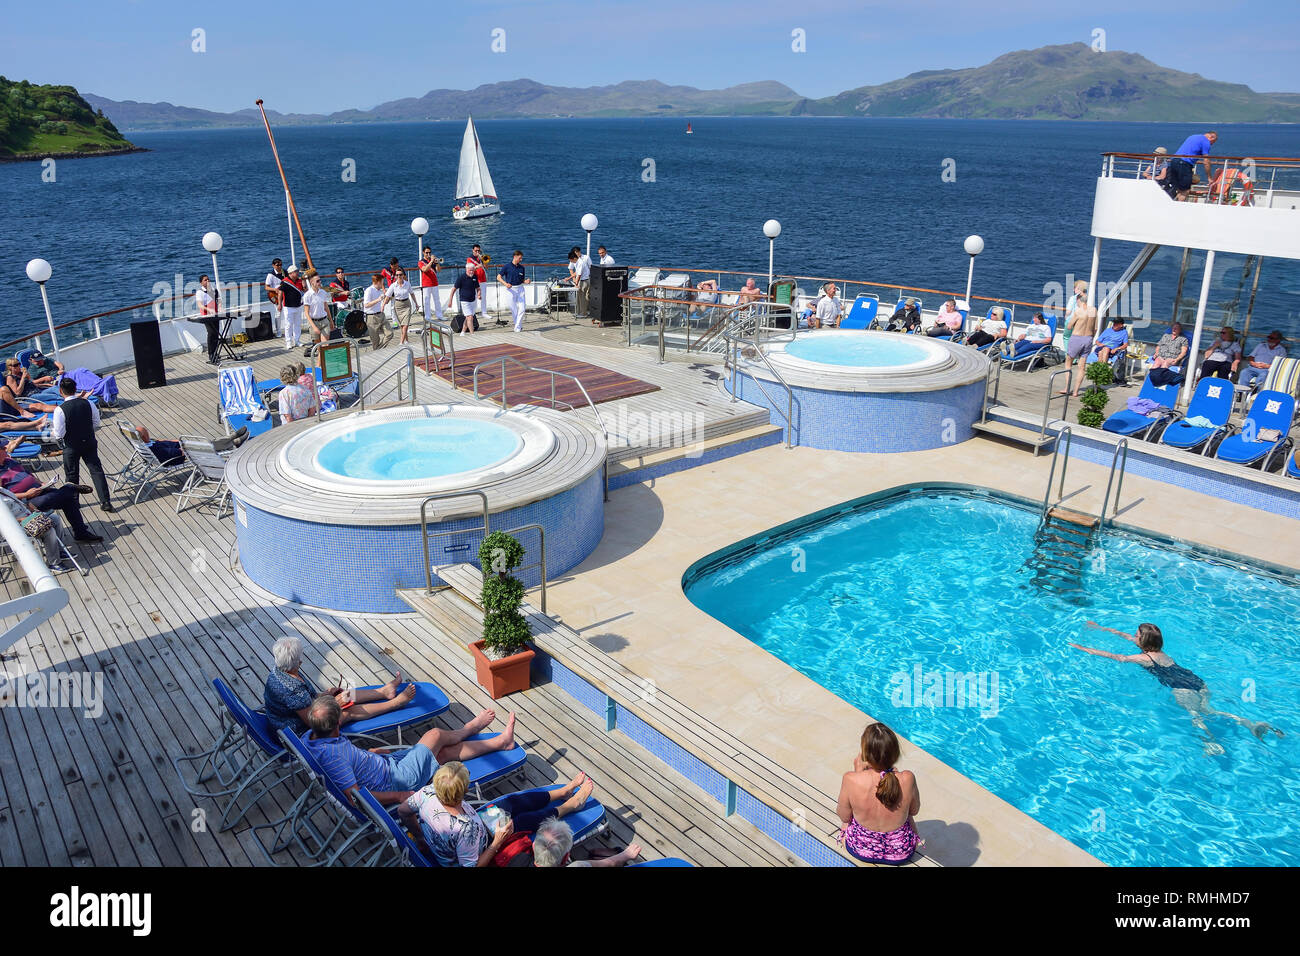 'Sail away' entertainment onboard Fred Olsen Boudicca cruise ship on leaving Tobermory, Isle of Bute, Inner Hebrides, Scotland, United Kingdom - Stock Image